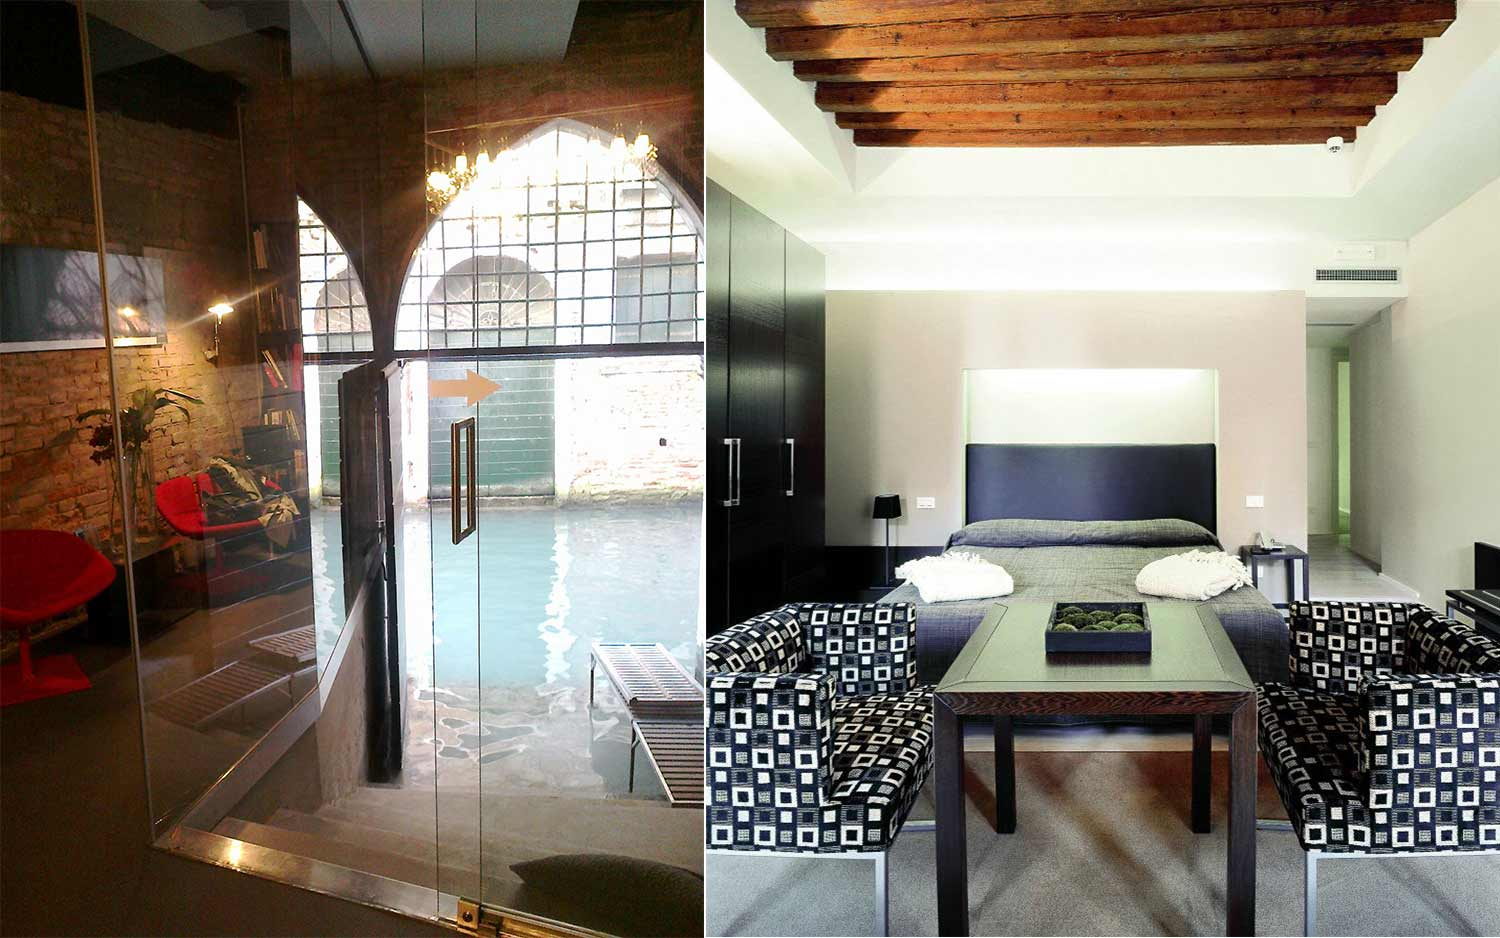 The charming house dd724 design hotel di lusso venezia for Charming small hotels italy